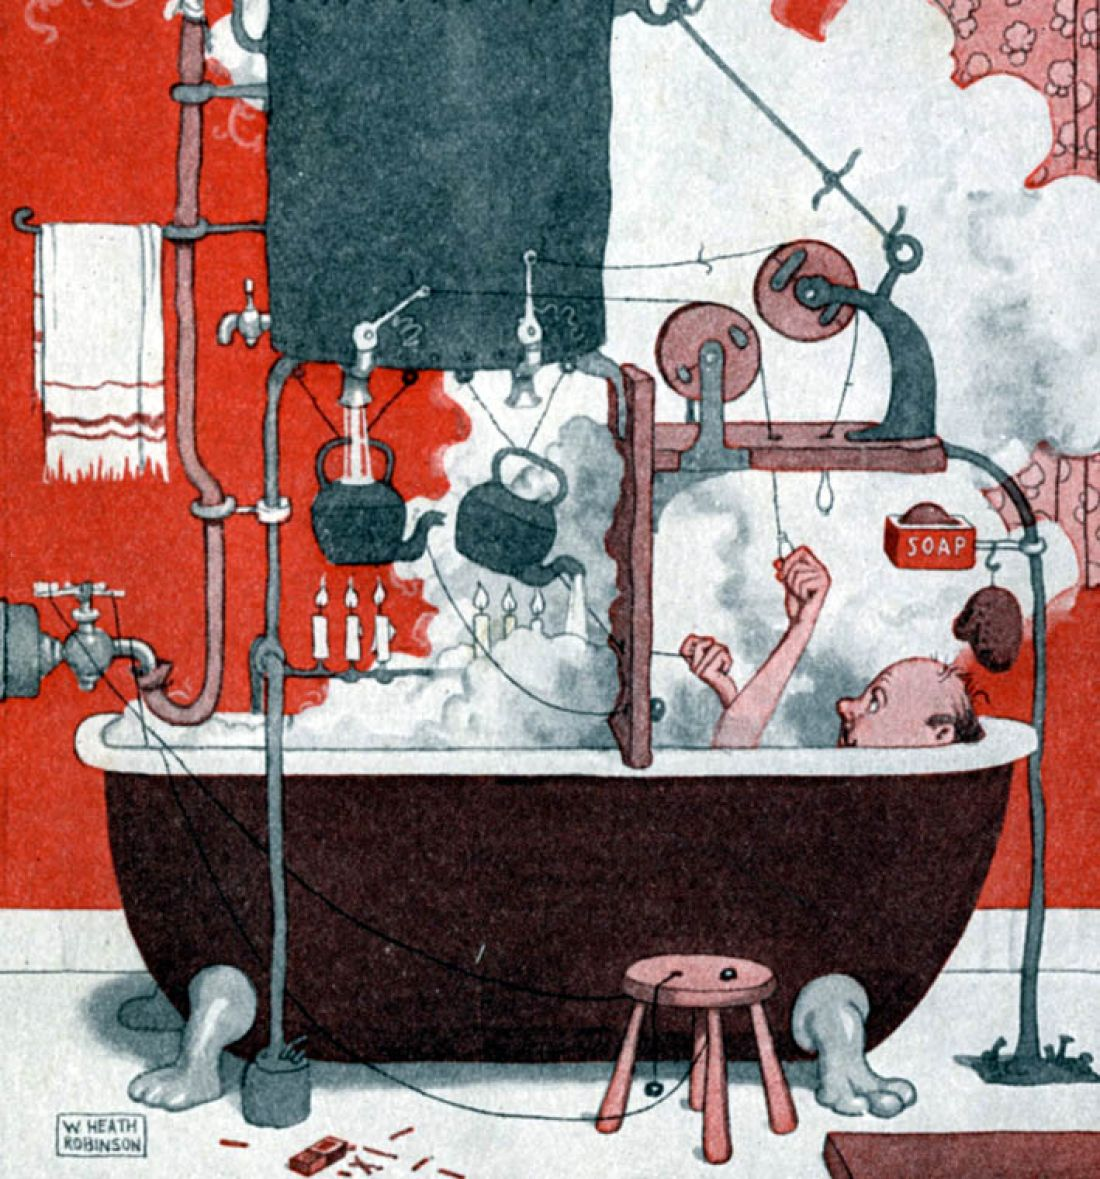 Detail of 'With a Clarkhill You Will Have Cheap and Unlimited Hot Water', from This is a complicated way to obtain hot water, but . . ., c.1921